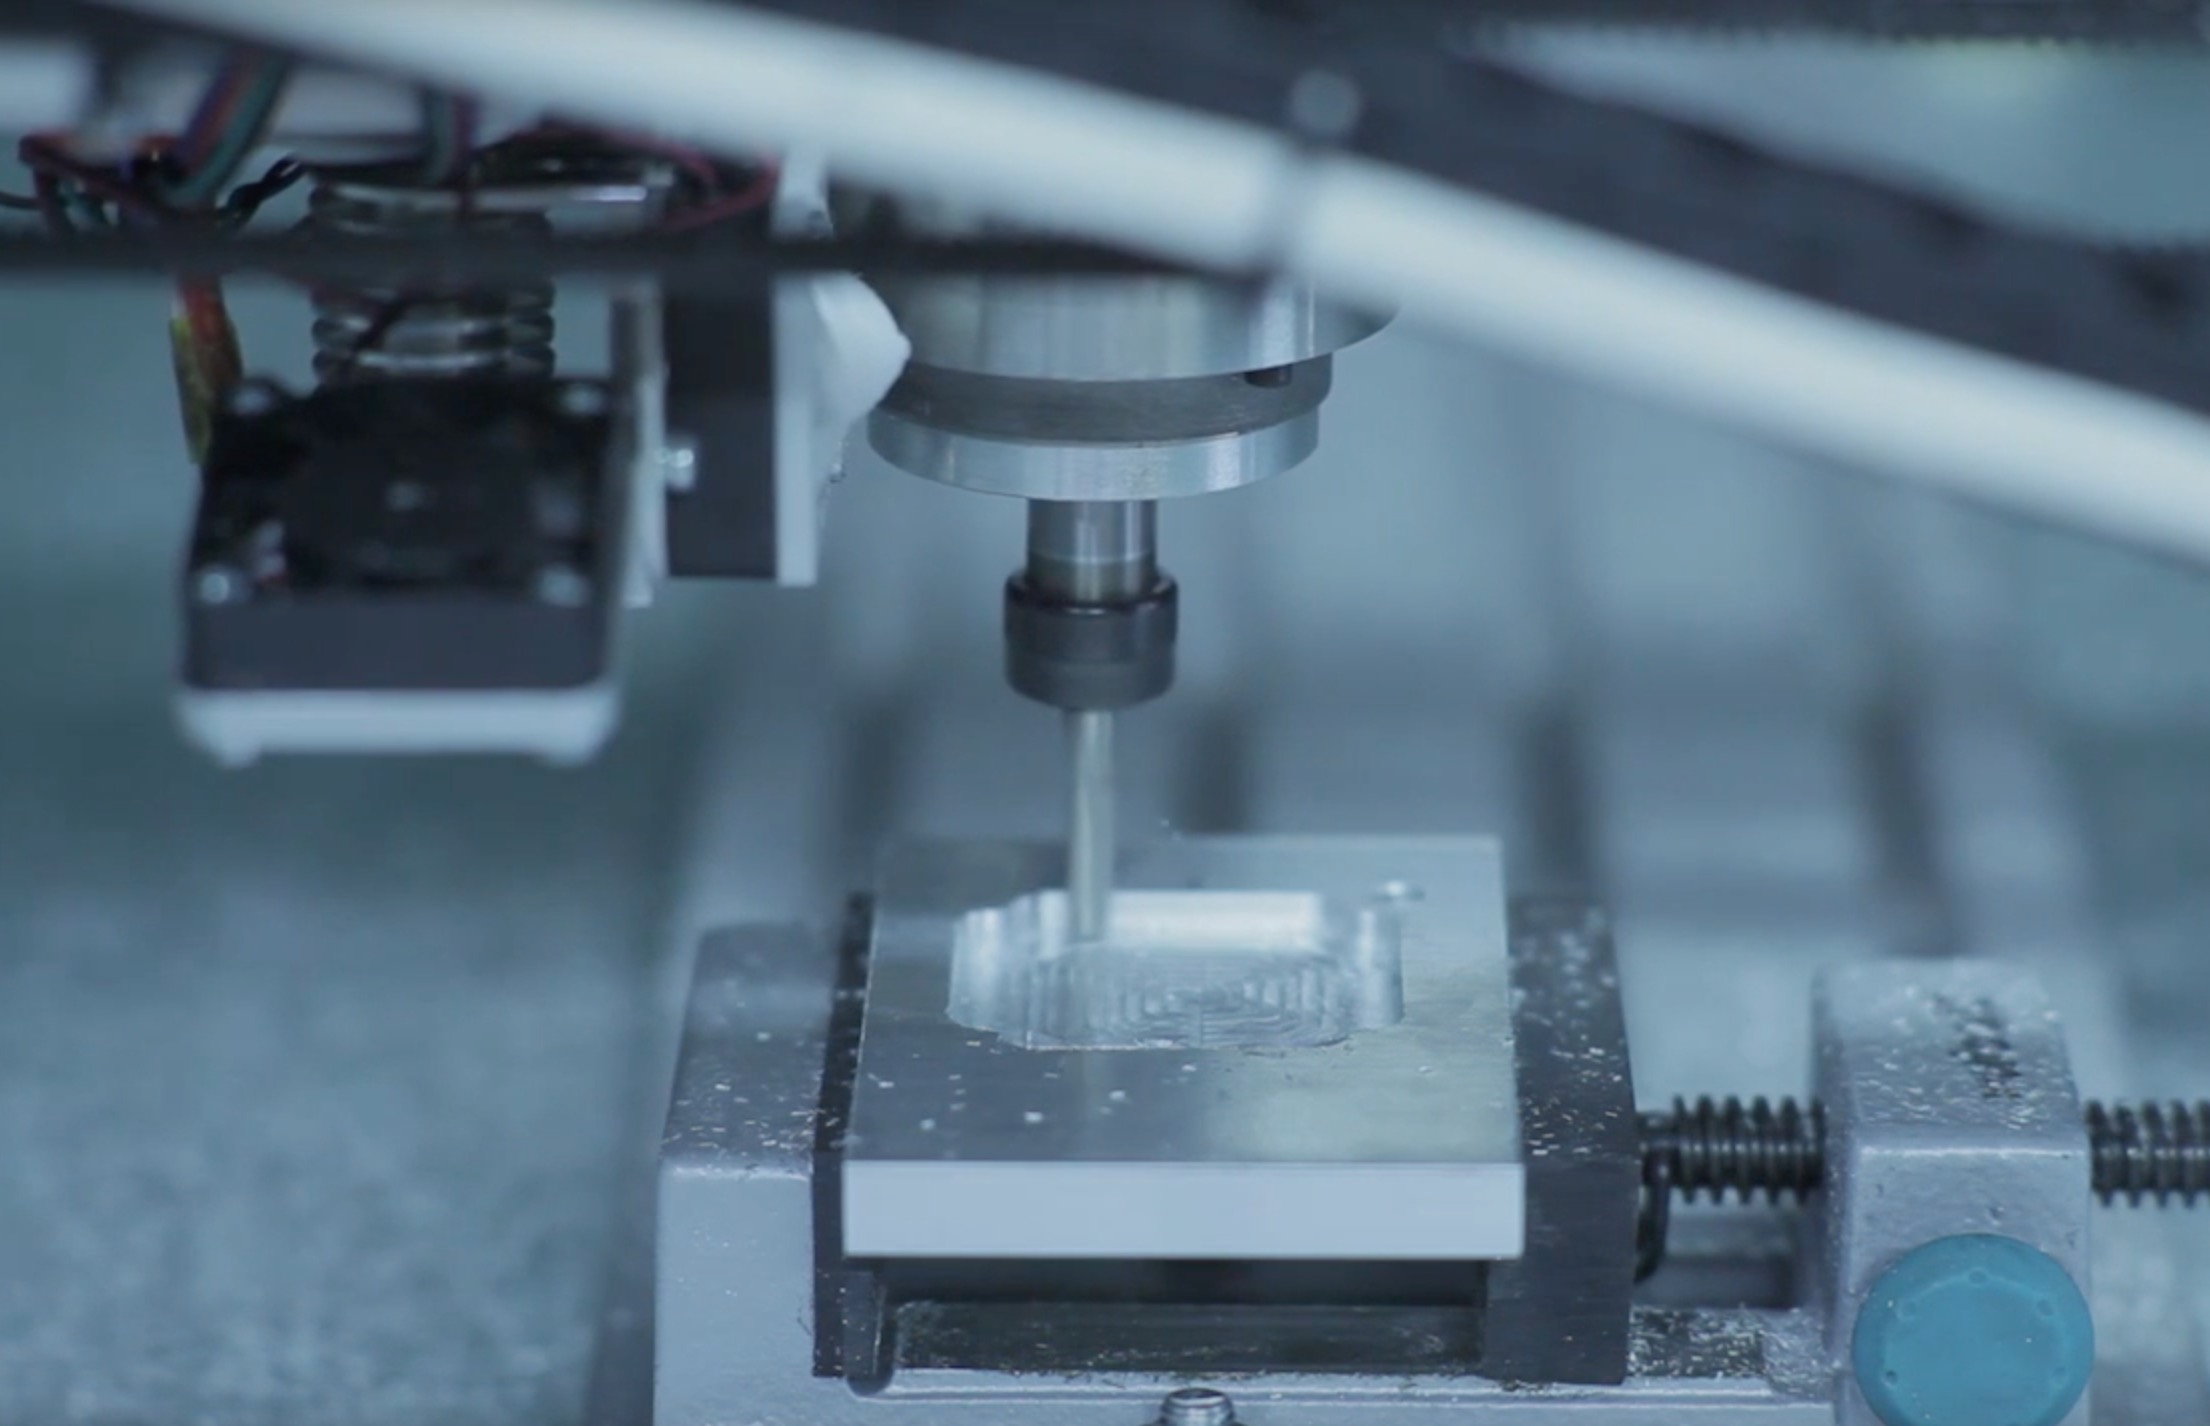 A milling head attached to the Dragon large-format 3D printer